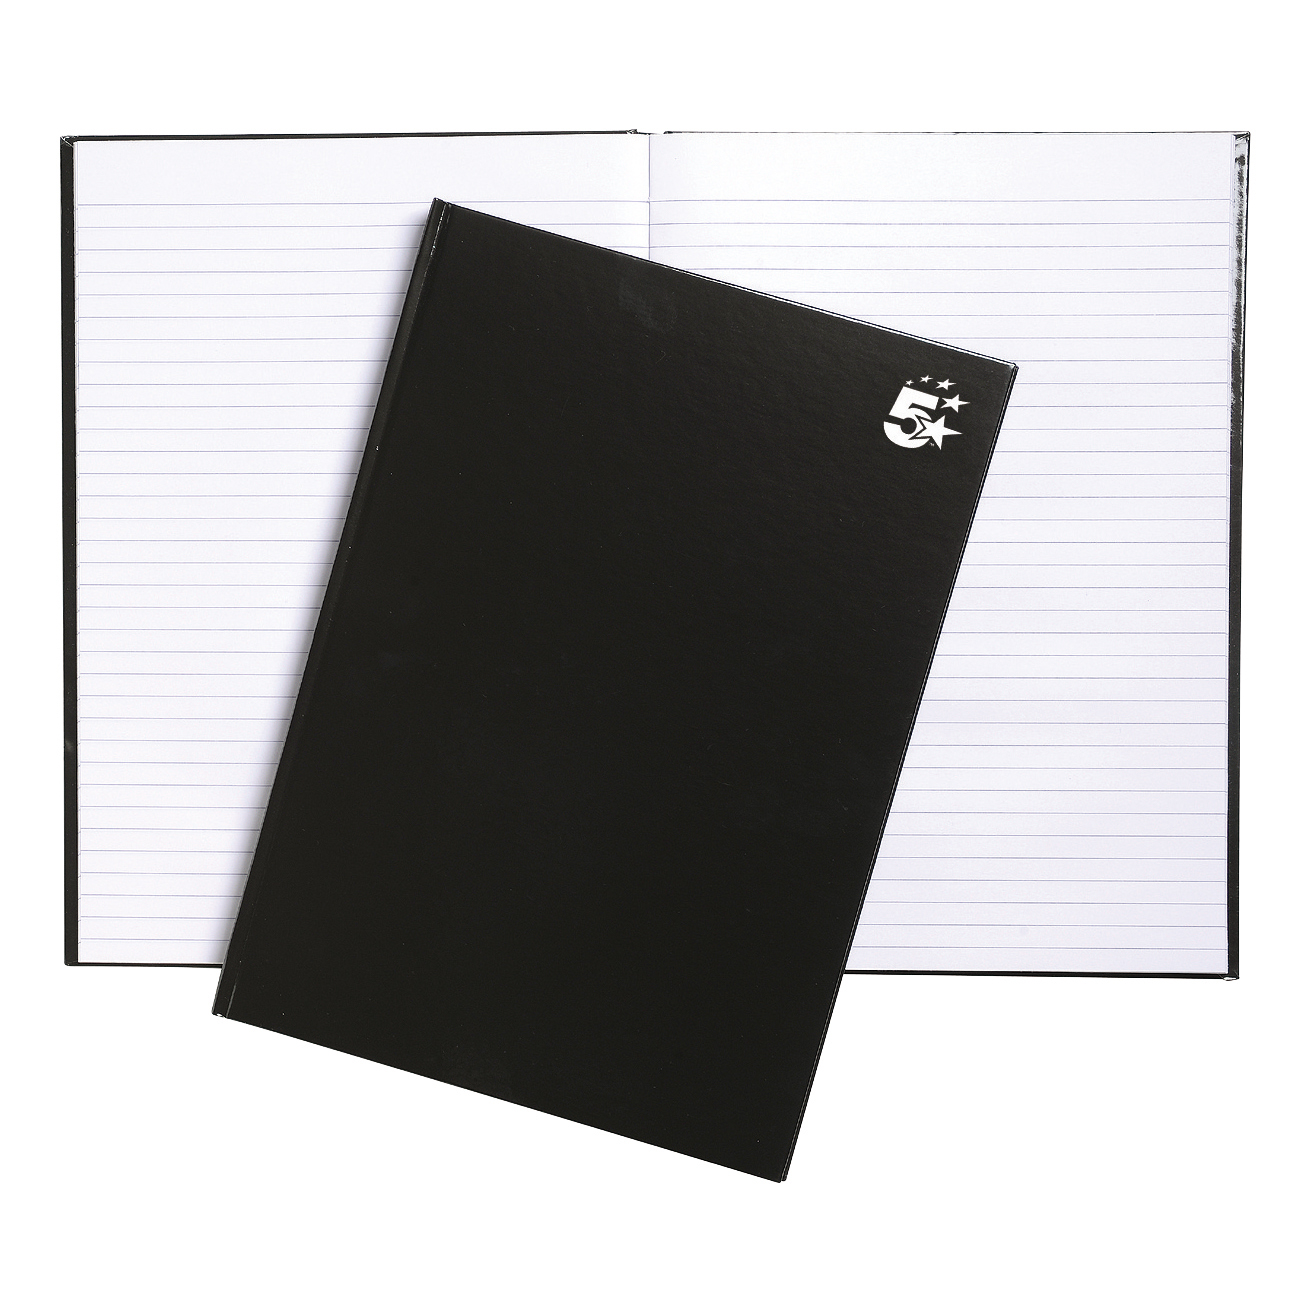 5 Star Office Notebook Casebound 75gsm Ruled 160pp A4 Black Pack 5